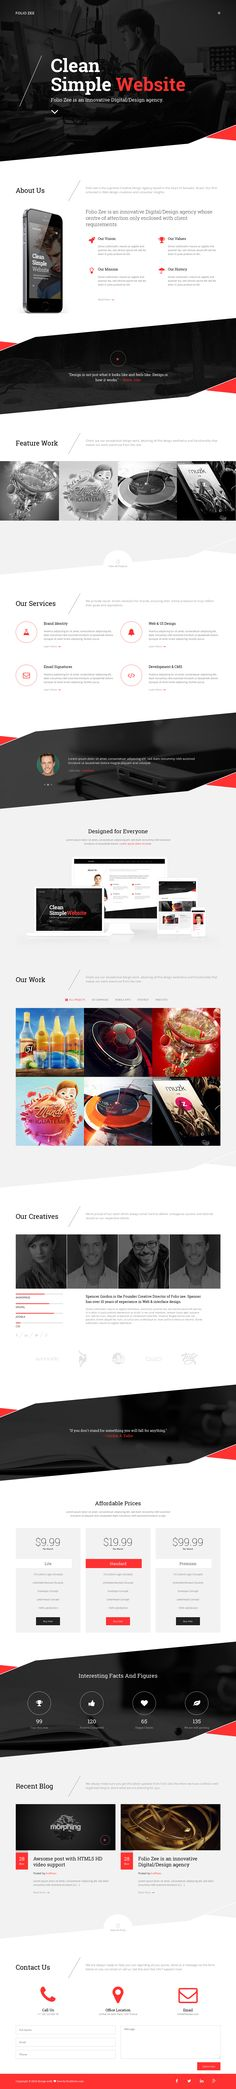 11+ THE MOST CREATIVE WORDPRESS THEMES OF 2014